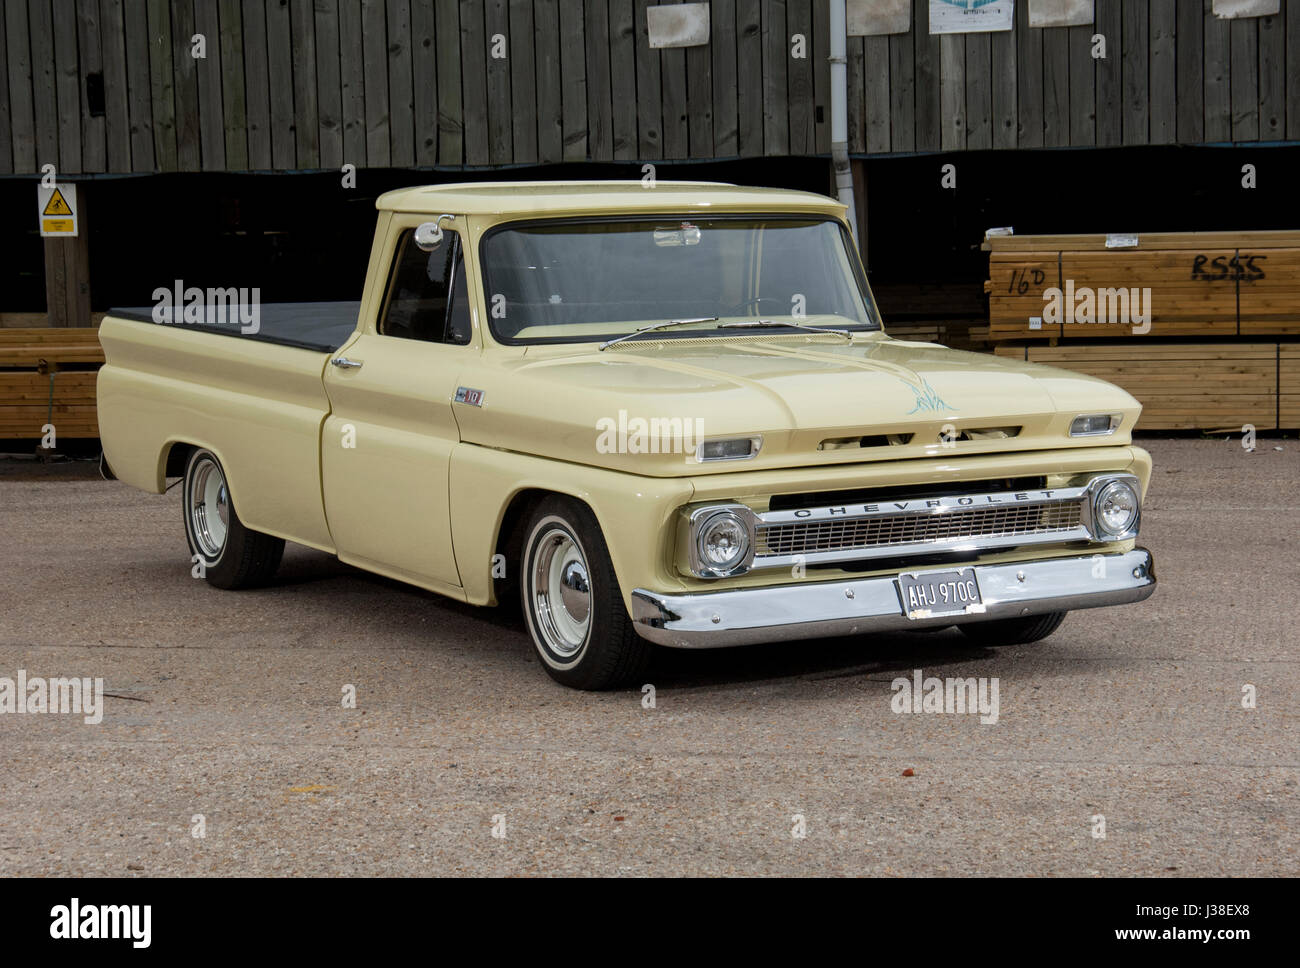 Chevy C10 Stock Photos Images Alamy 1966 Chevrolet Pickup Truck Classic Pick Up Image